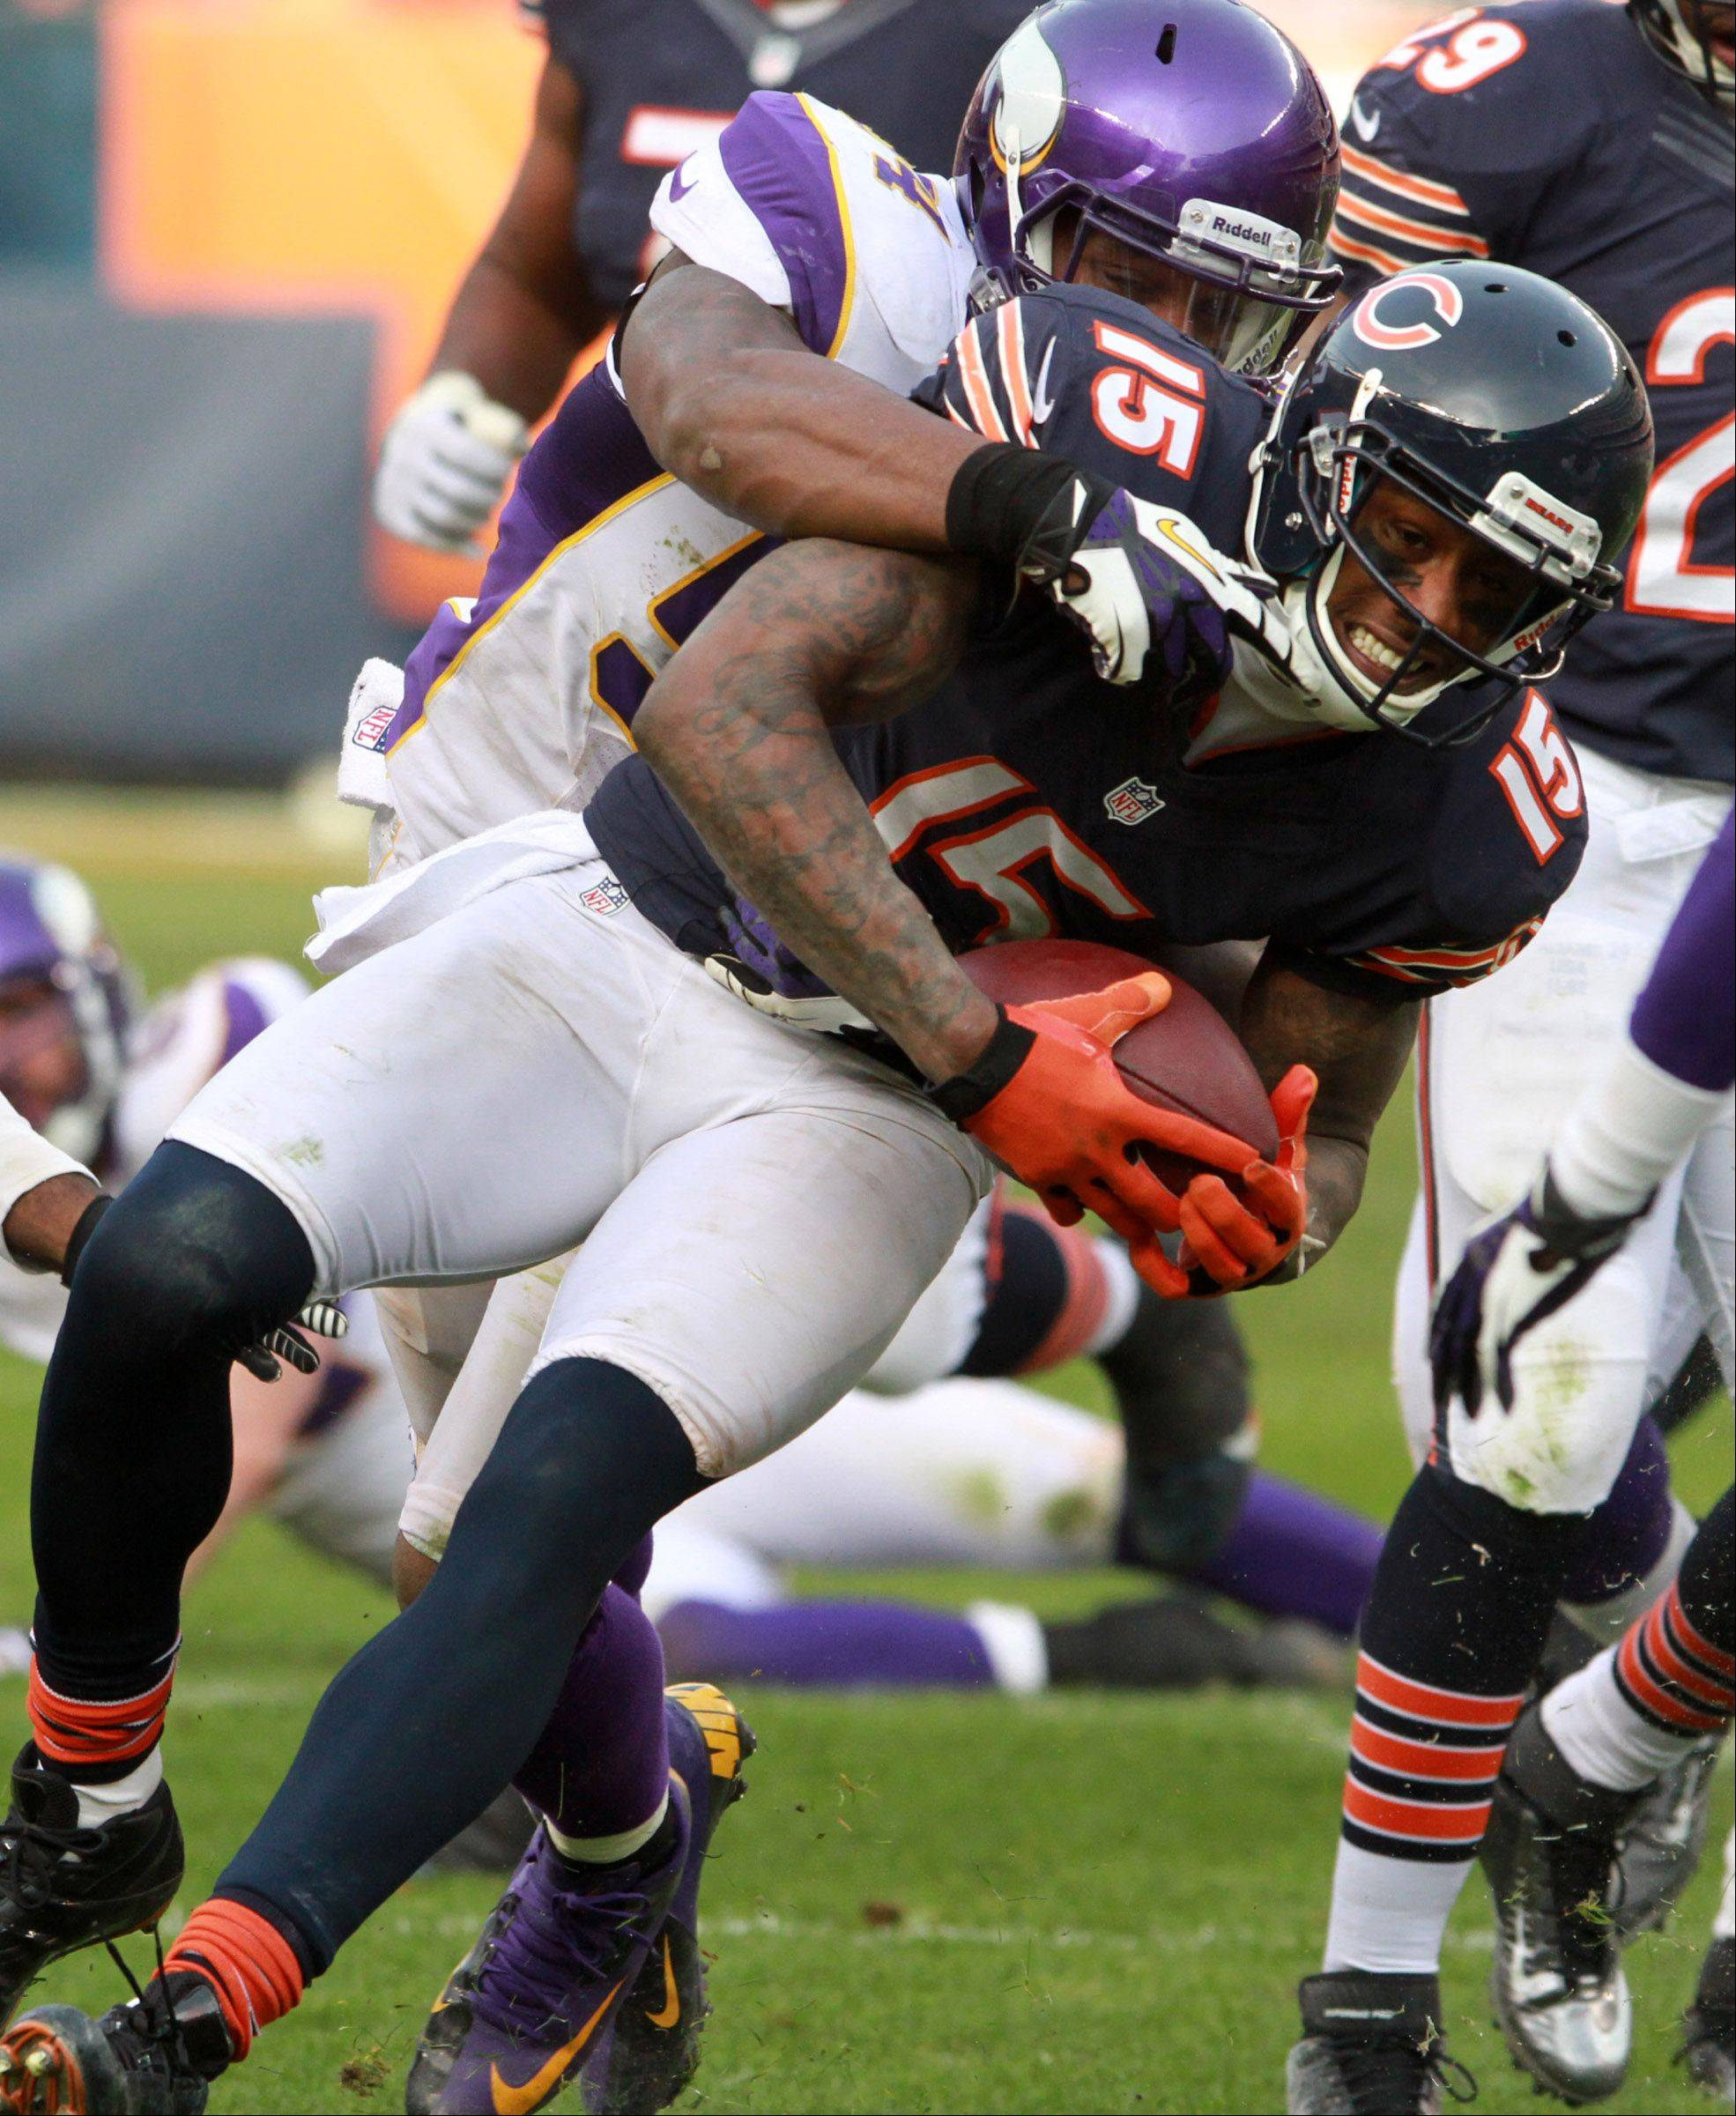 Chicago Bears Brandon Marshall is dragged down by Minnesota Vikings' Jasper Brinkley after catching a pass from quarterback Jay Cutler at Soldier Field Sunday.